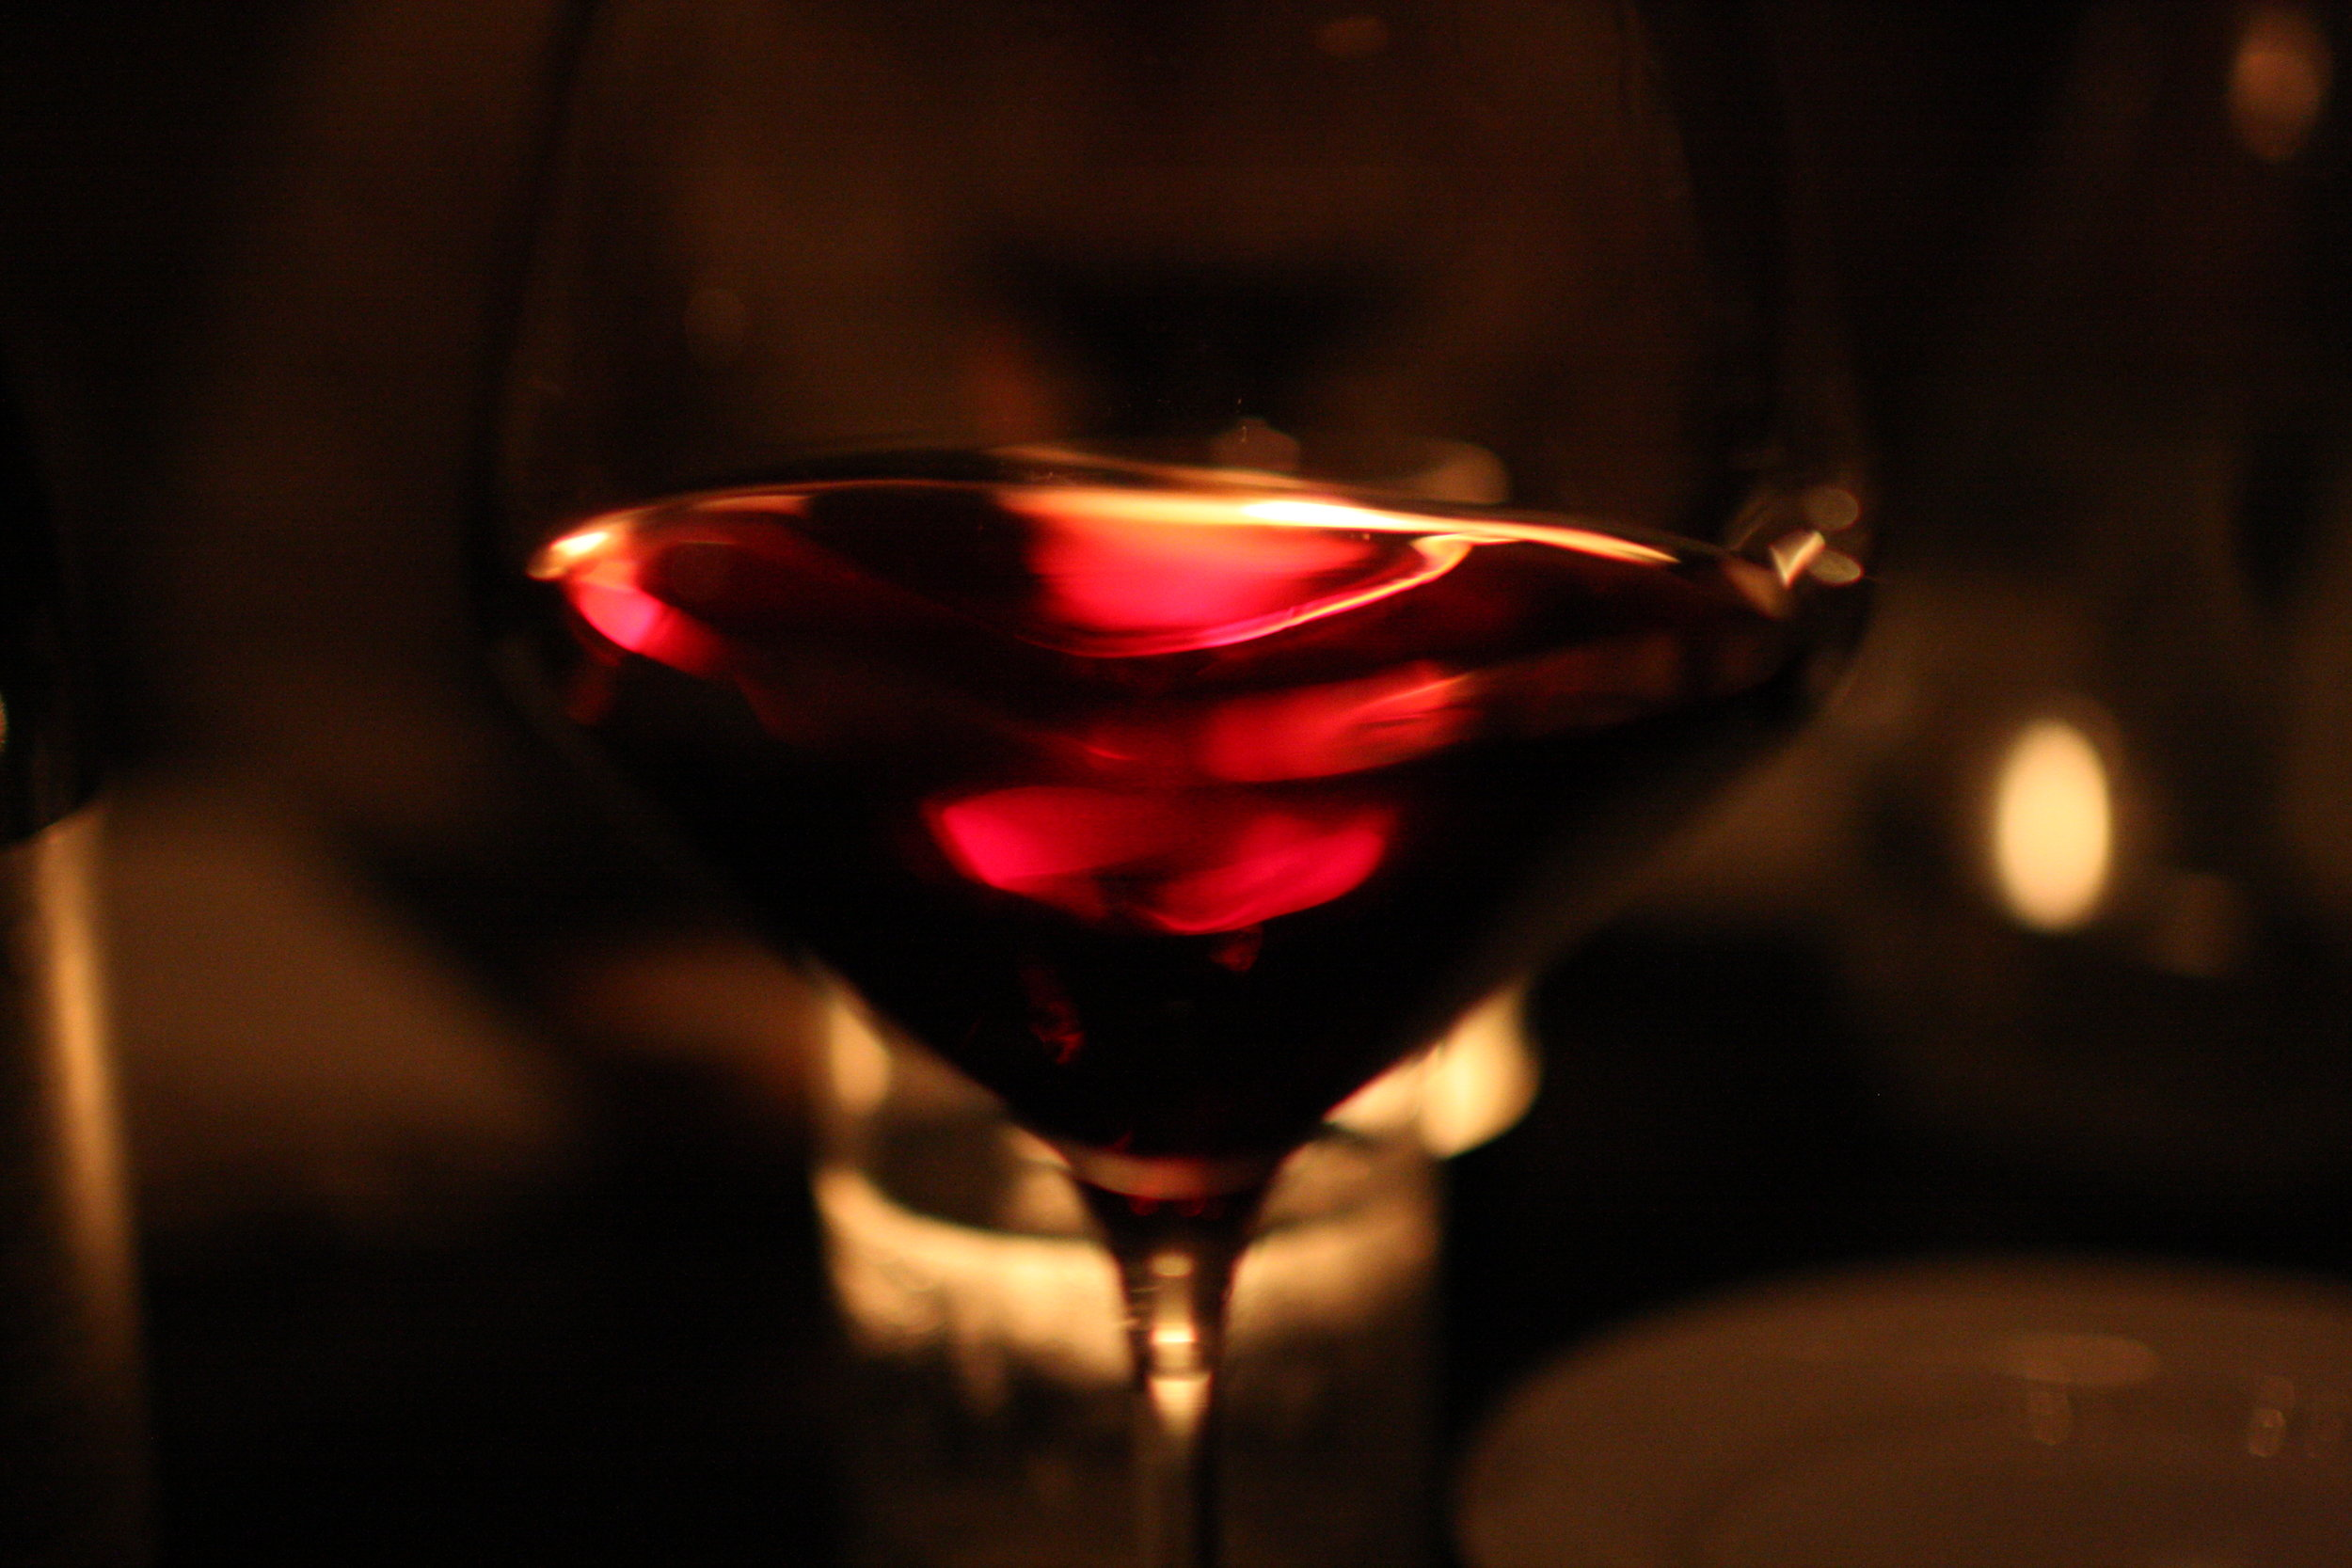 Swirling wine in a circular motion allows the nose, or bouquet, of the wine to open up and is one reason a wine glass should only be filled half way. Photo courtesy of Brian Solis/Flickr.